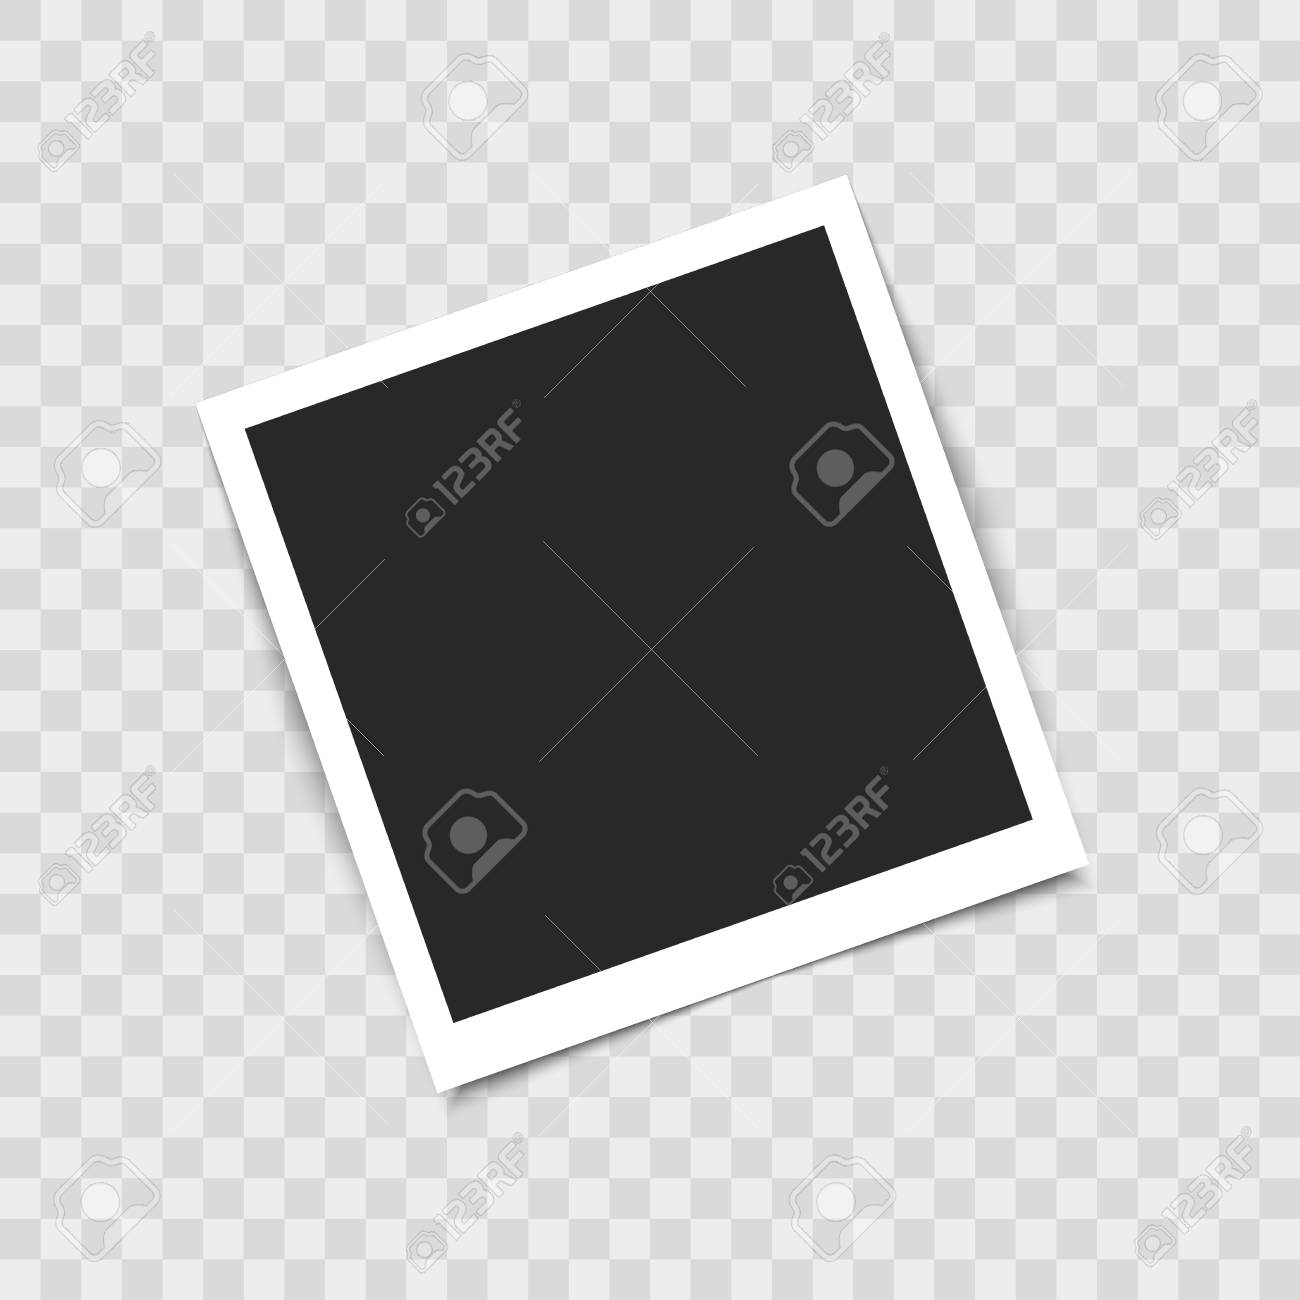 Realistic empty photo frame on transparent background. Vector illustration for your design - 126198401